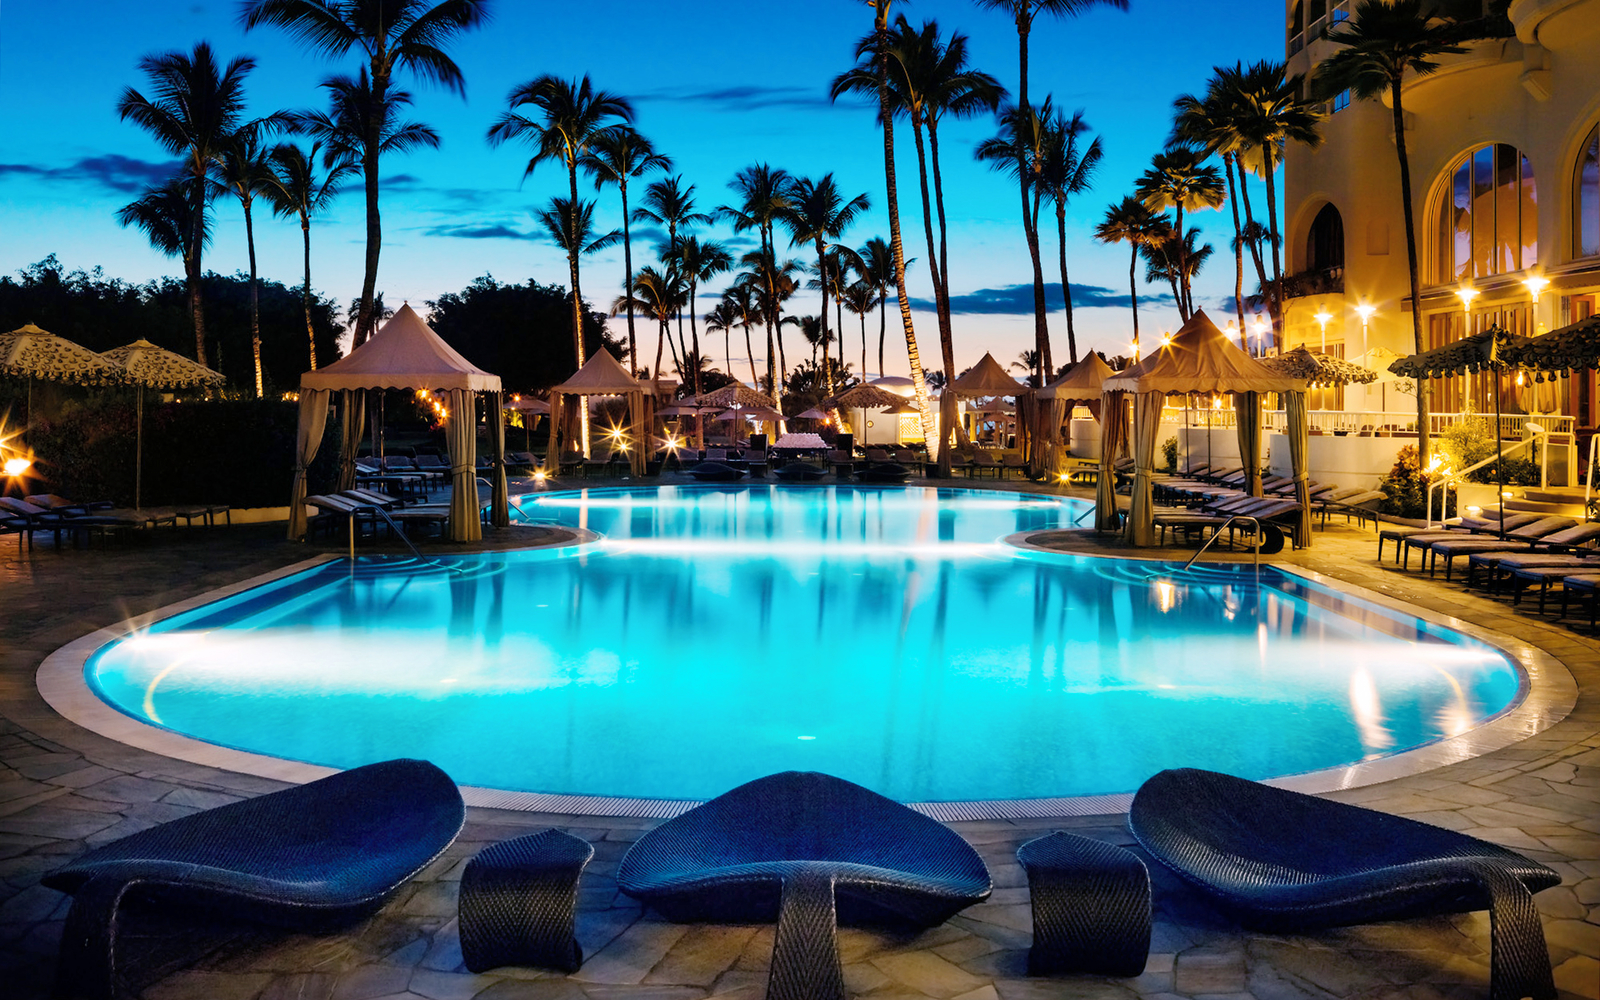 Maui Fairmont Kea Lani Hotels Ravel Leisure